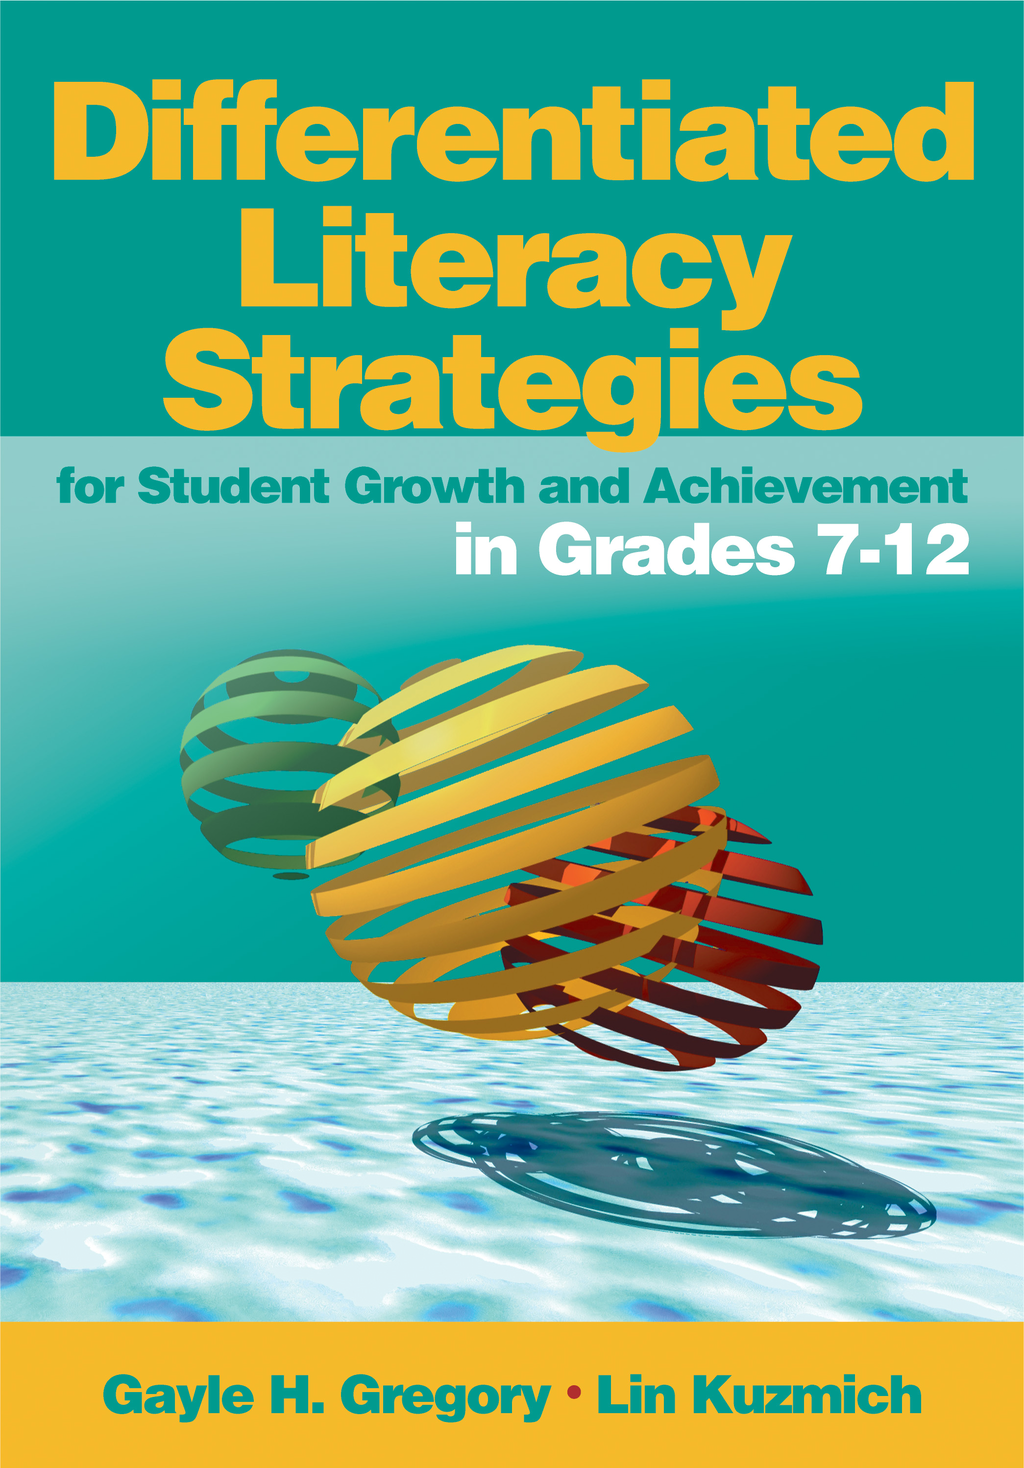 Linda (Lin) M. (Marlene) Kuzmich  Gayle H. Gregory - Differentiated Literacy Strategies for Student Growth and Achievement in Grades 7-12